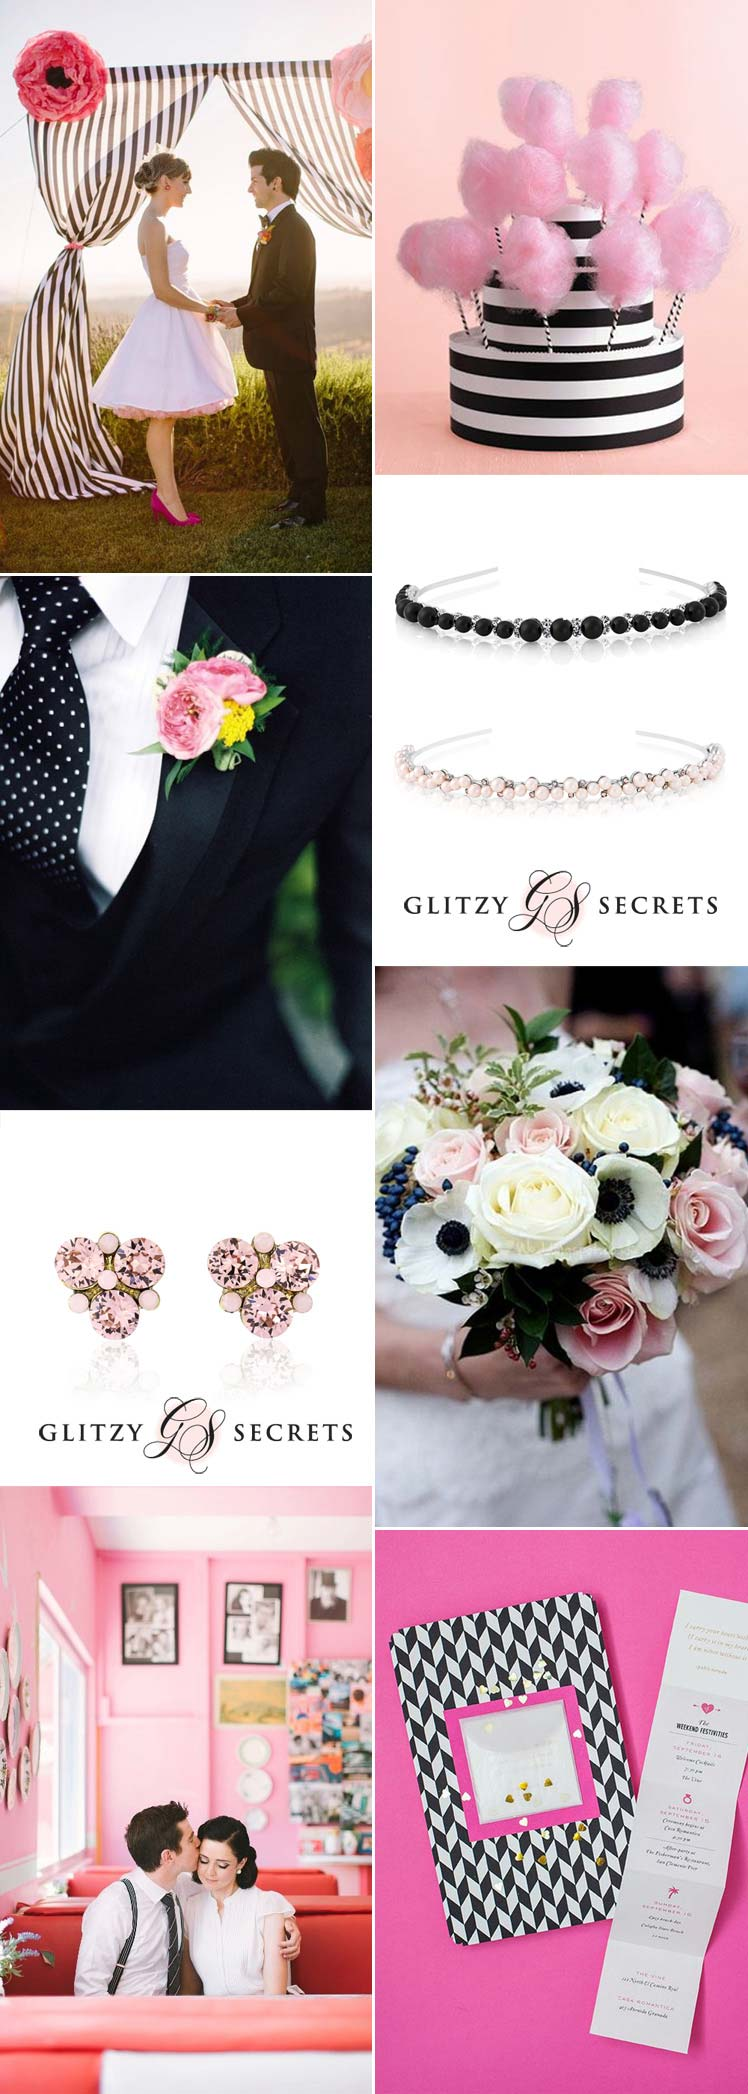 a black white and pink retro wedding